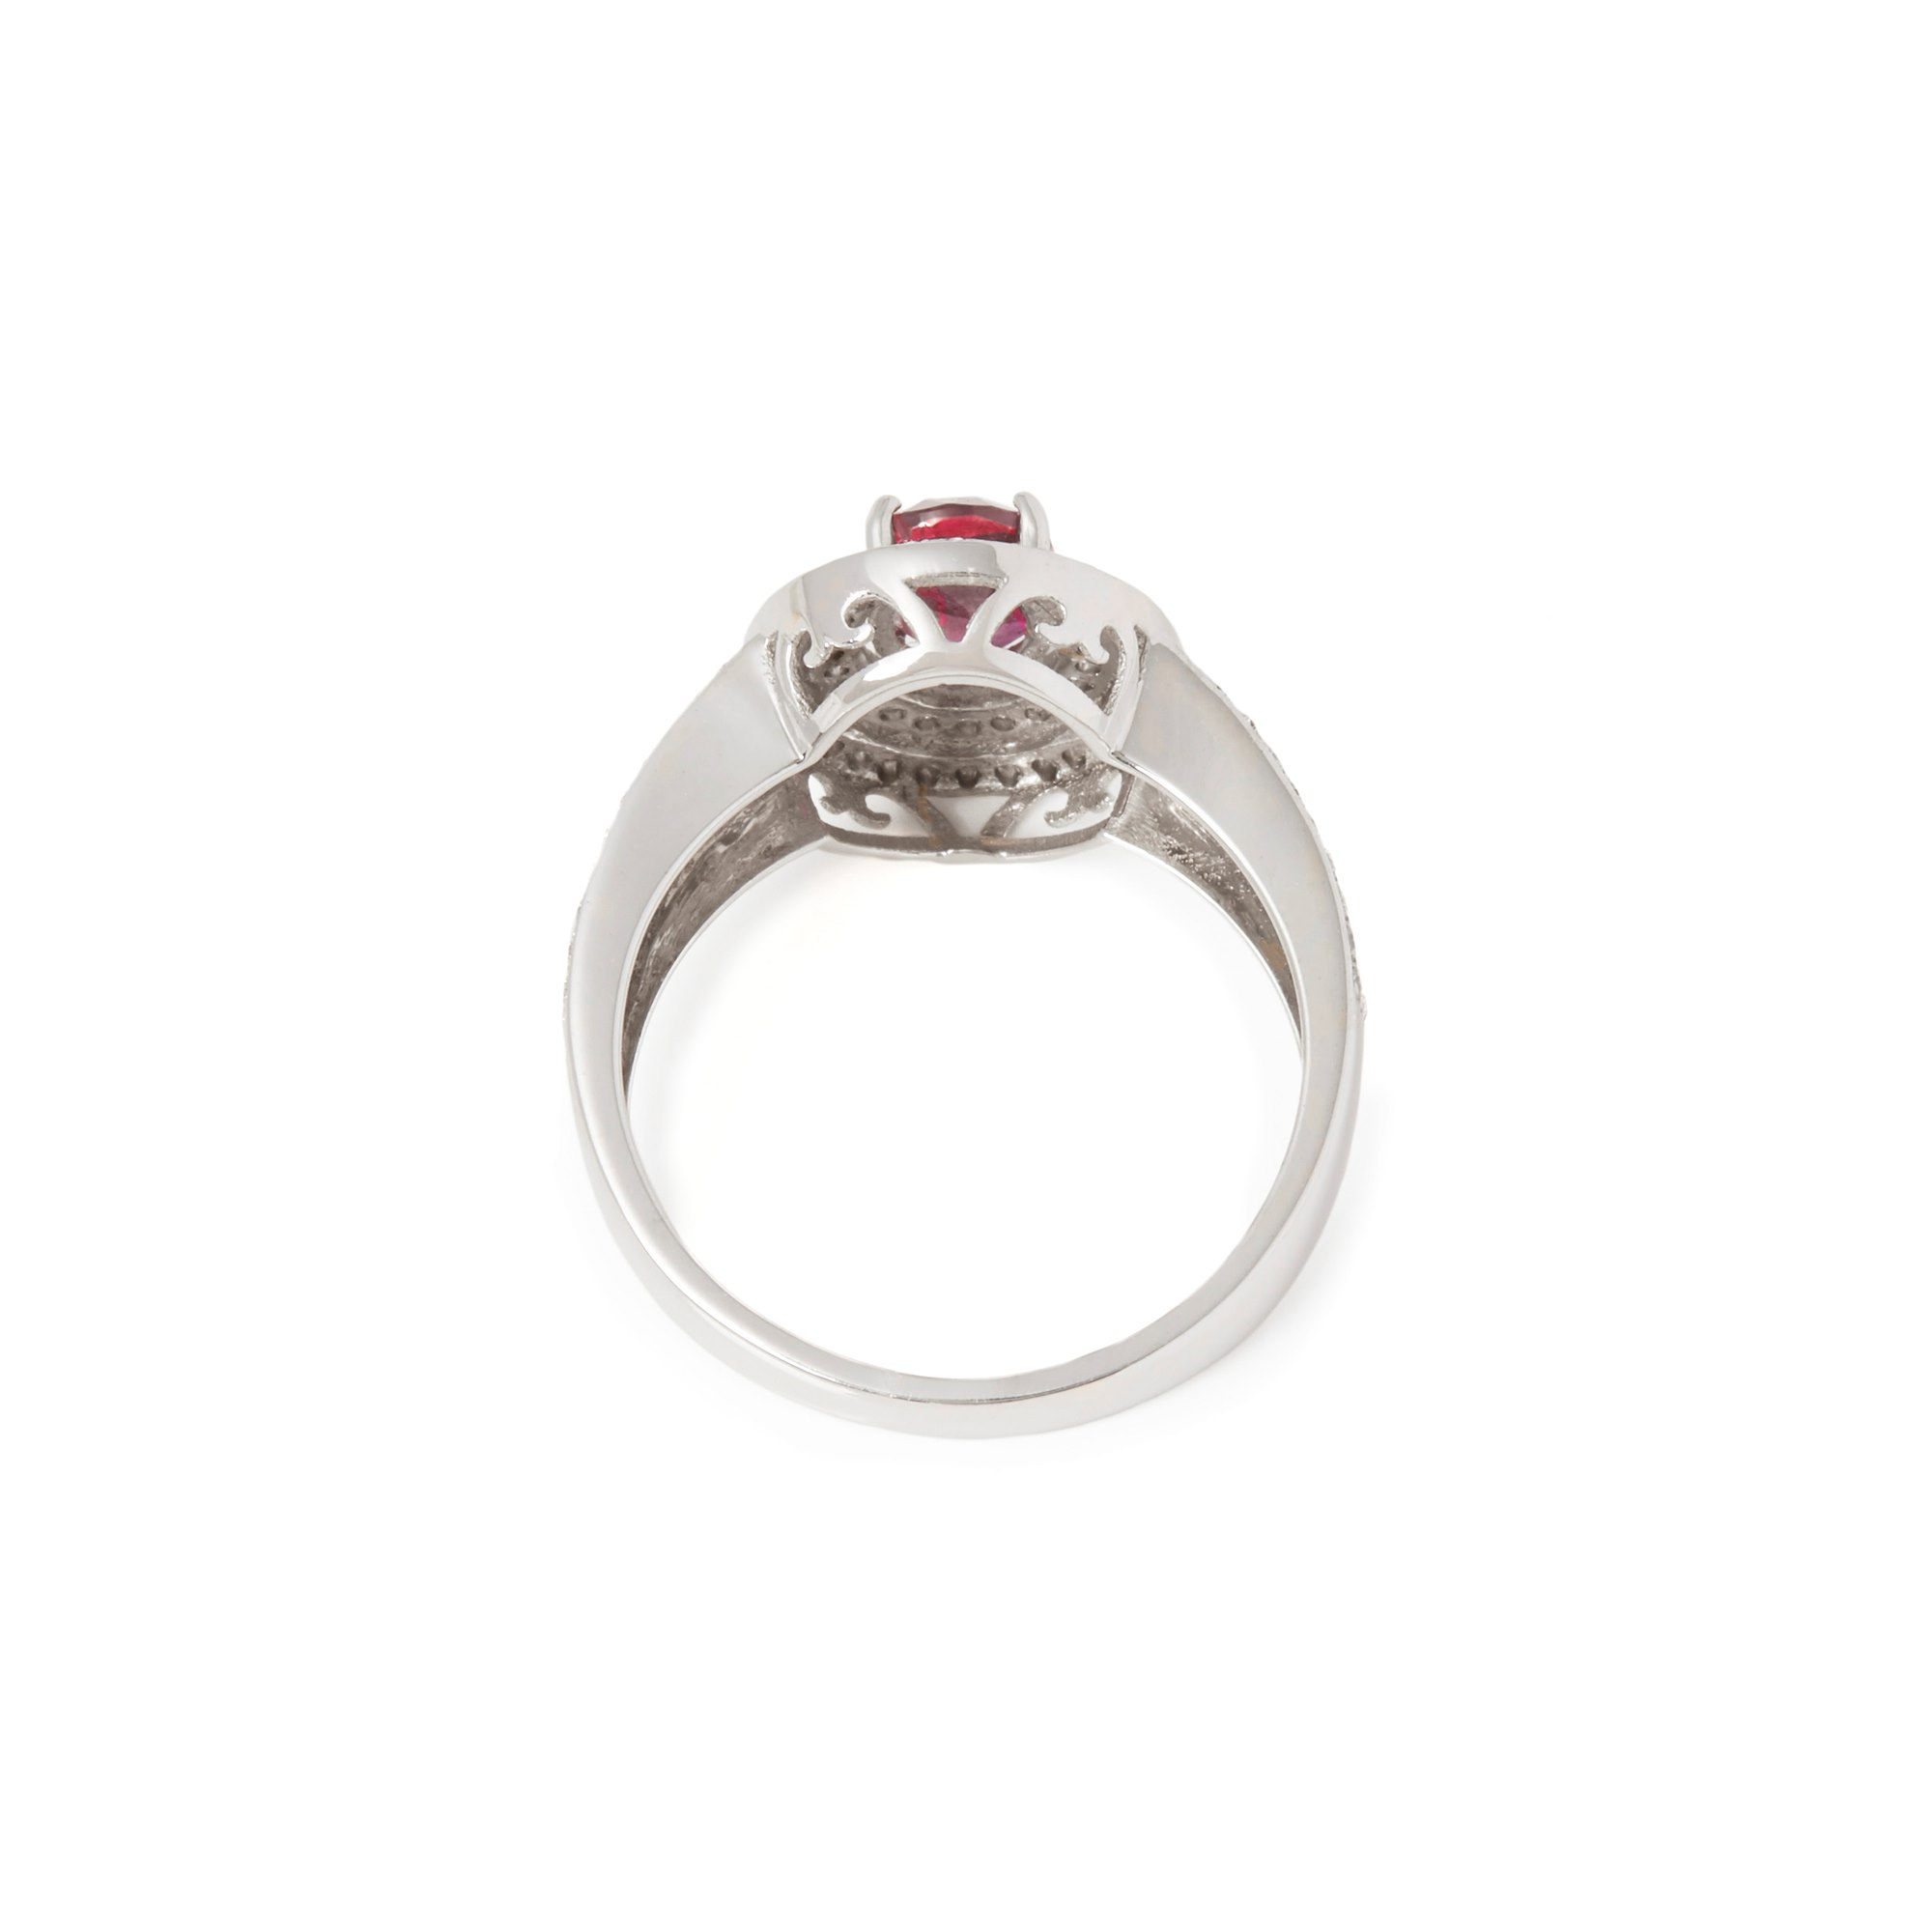 David Jerome Certified 1.09ct Untreated Burmese Oval Cut Ruby and Diamond 18ct gold Ring